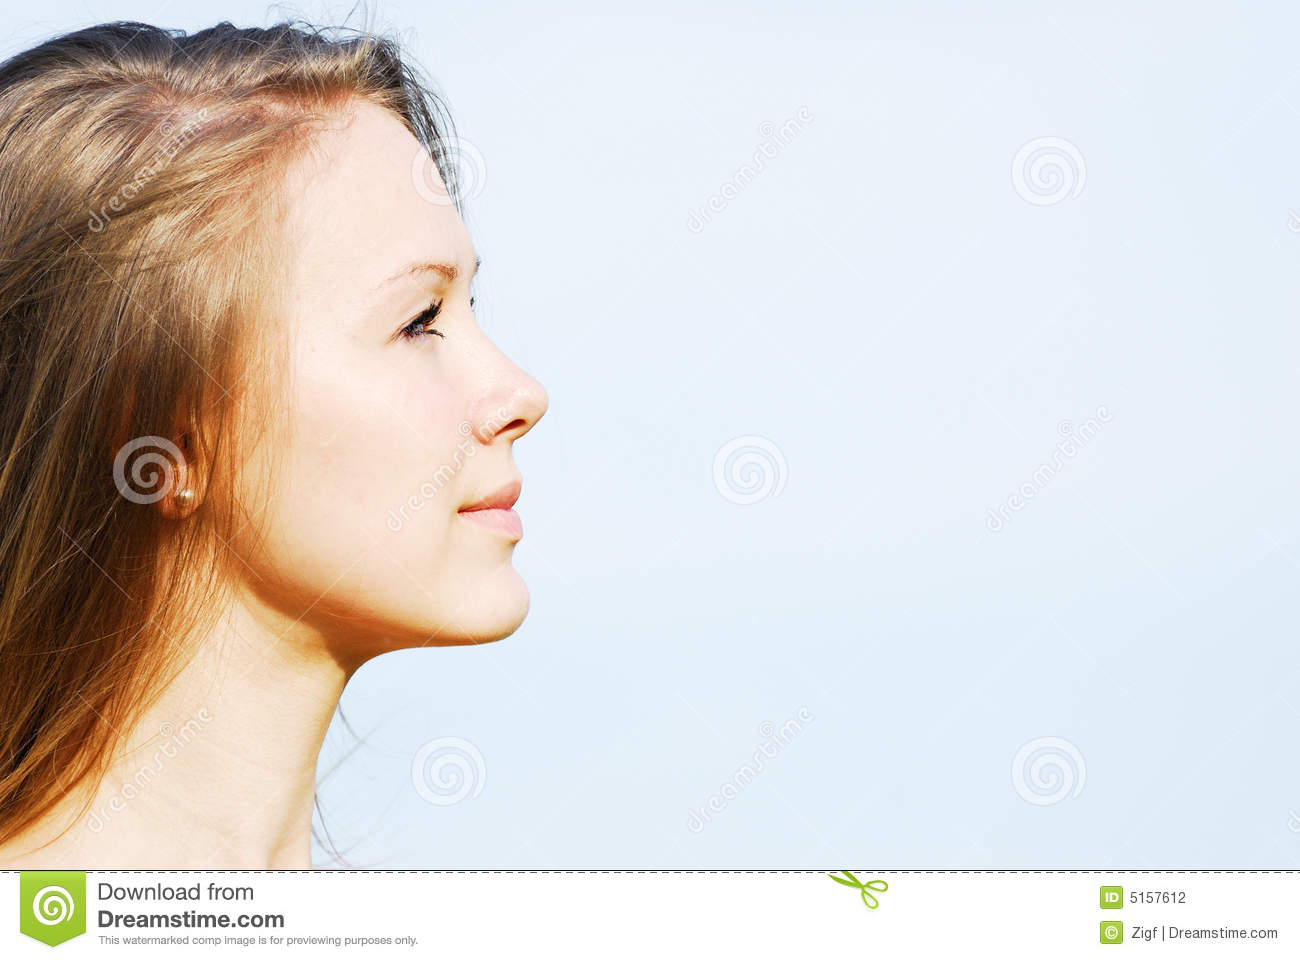 Profile Of The Face Of The Young Woman Stock Photo Image Of Head Majestic 5157612